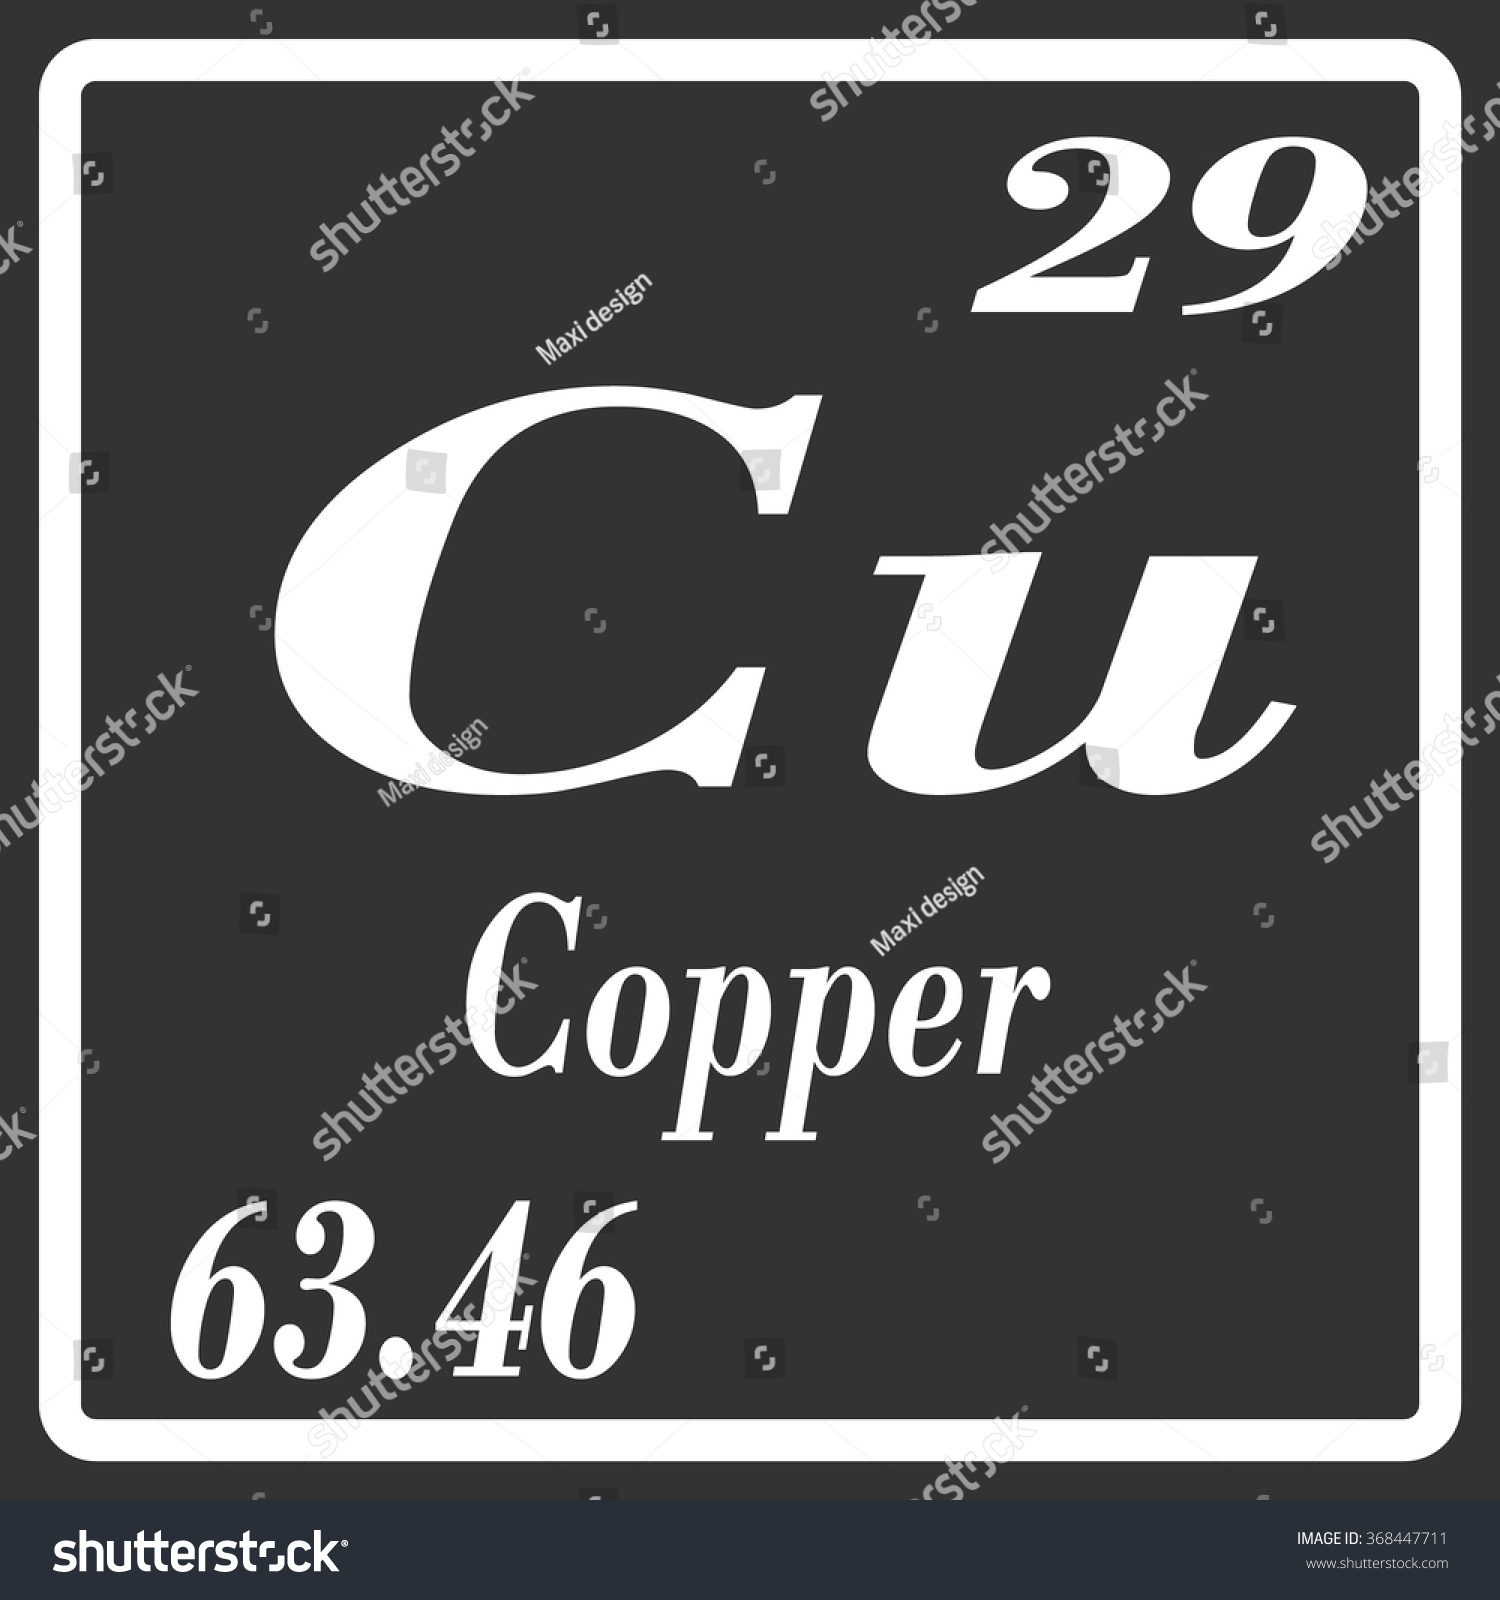 Copper abbreviation periodic table images periodic table images copper abbreviation periodic table image collections periodic copper abbreviation periodic table gallery periodic table images copper gamestrikefo Choice Image